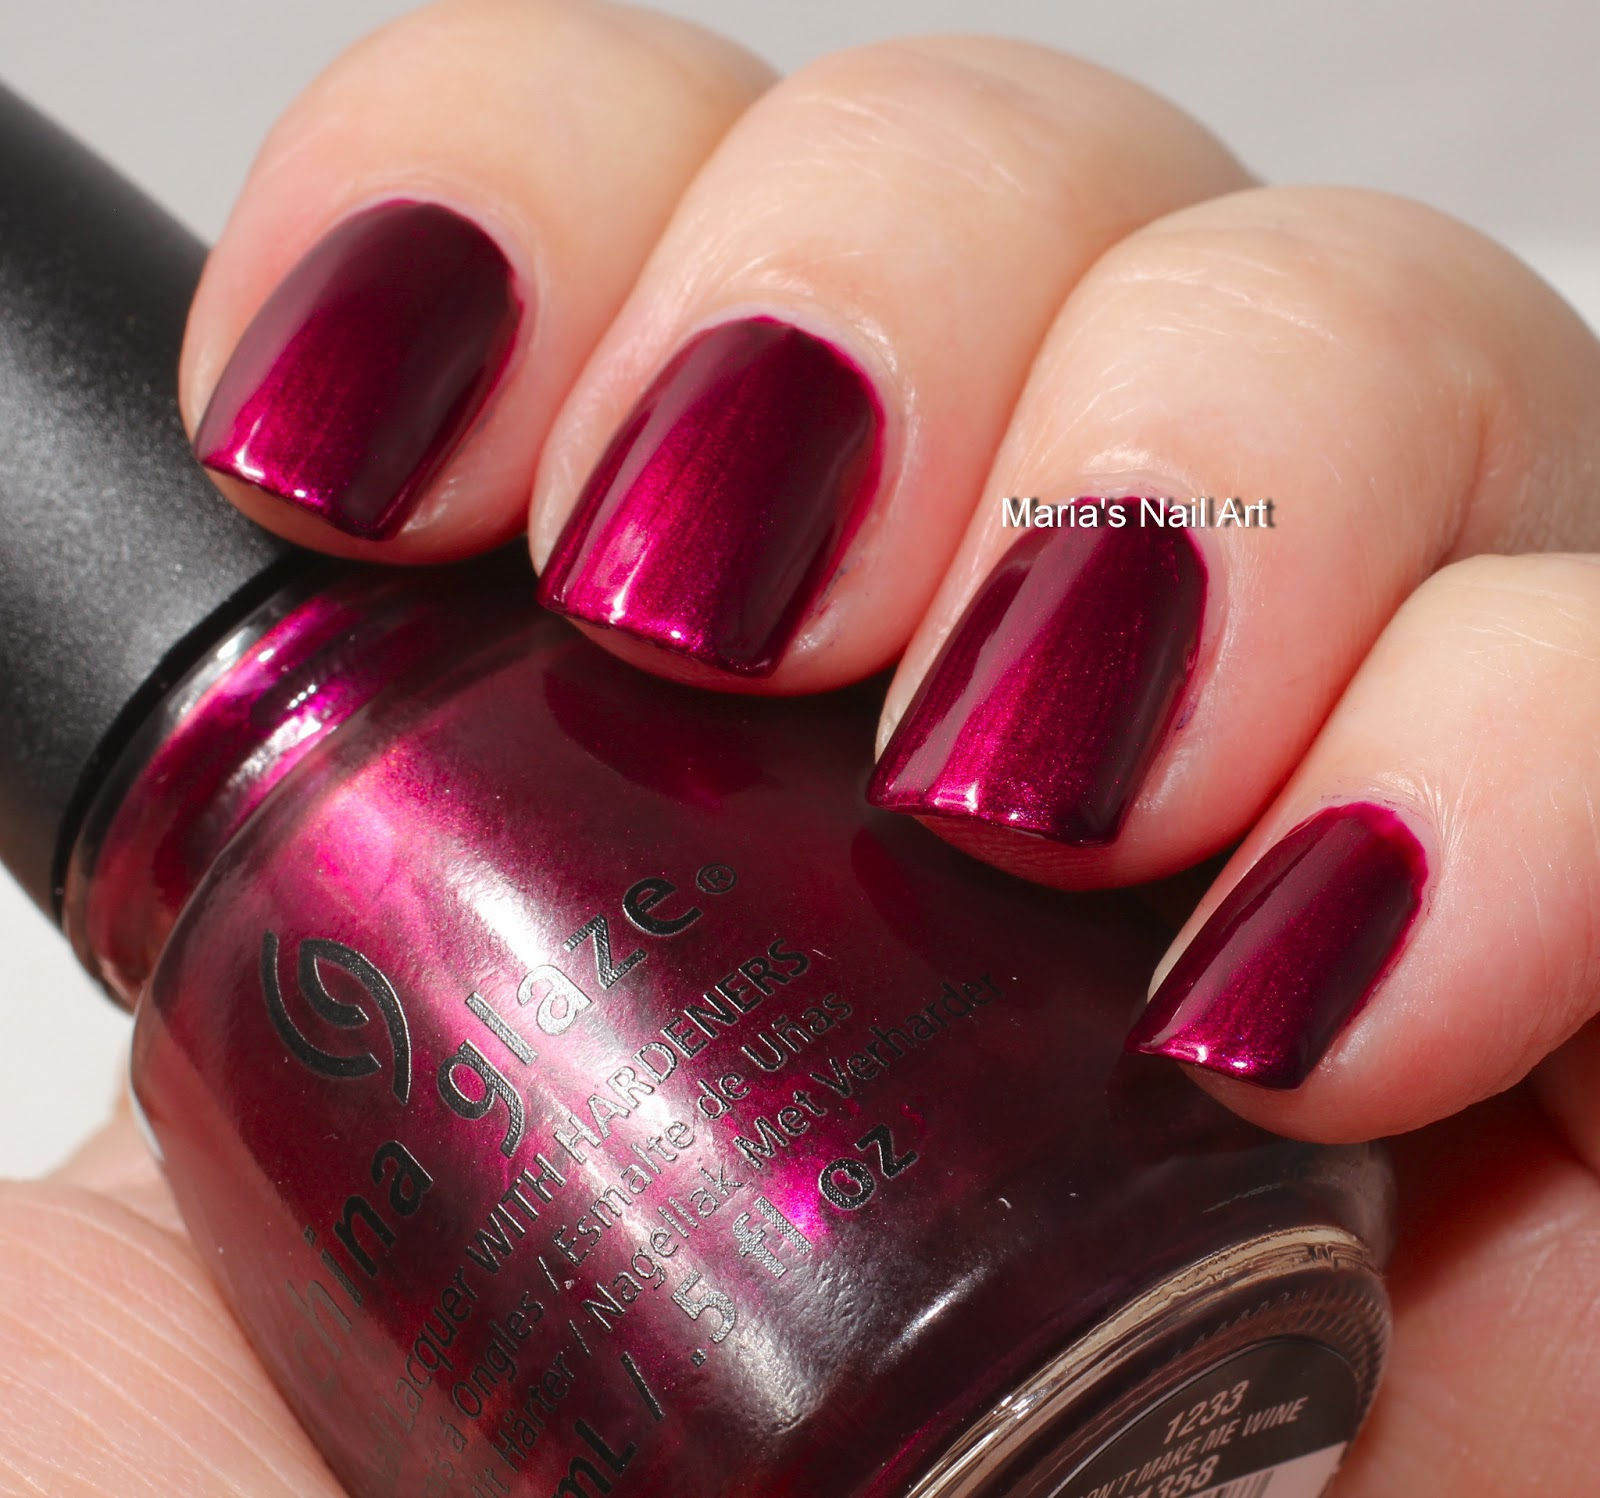 China Glaze Autumn Nights Coll Swatches Part 1 Dont Make Me Wine Red Y Willing Public Relations Kiss My Glass Tounge Chick And Scandalous